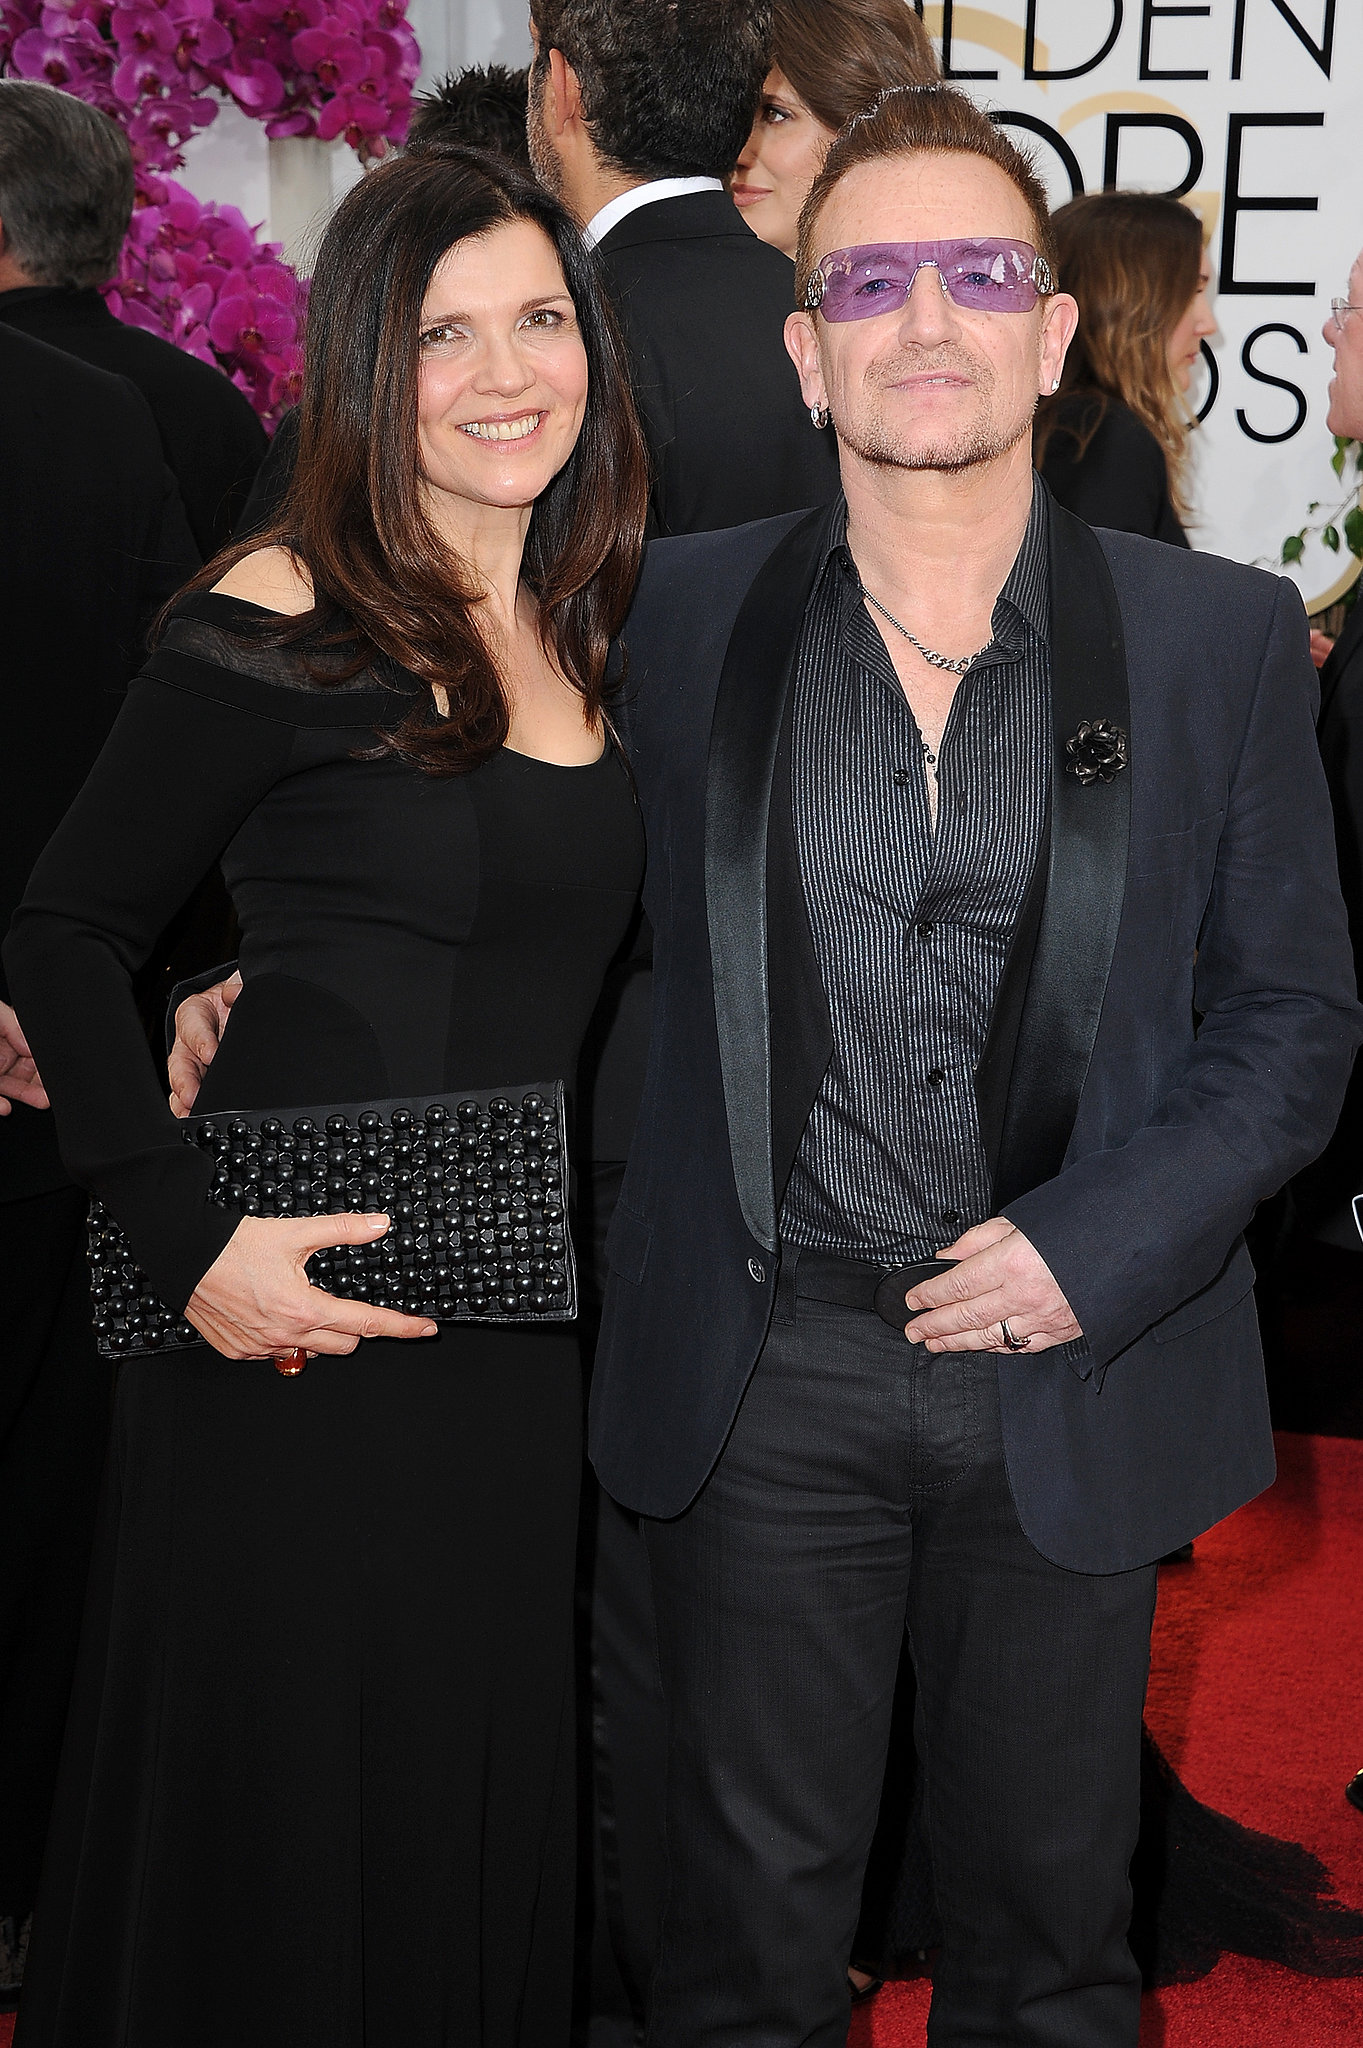 Bono and his wife, Alison, posed for pictures on the red